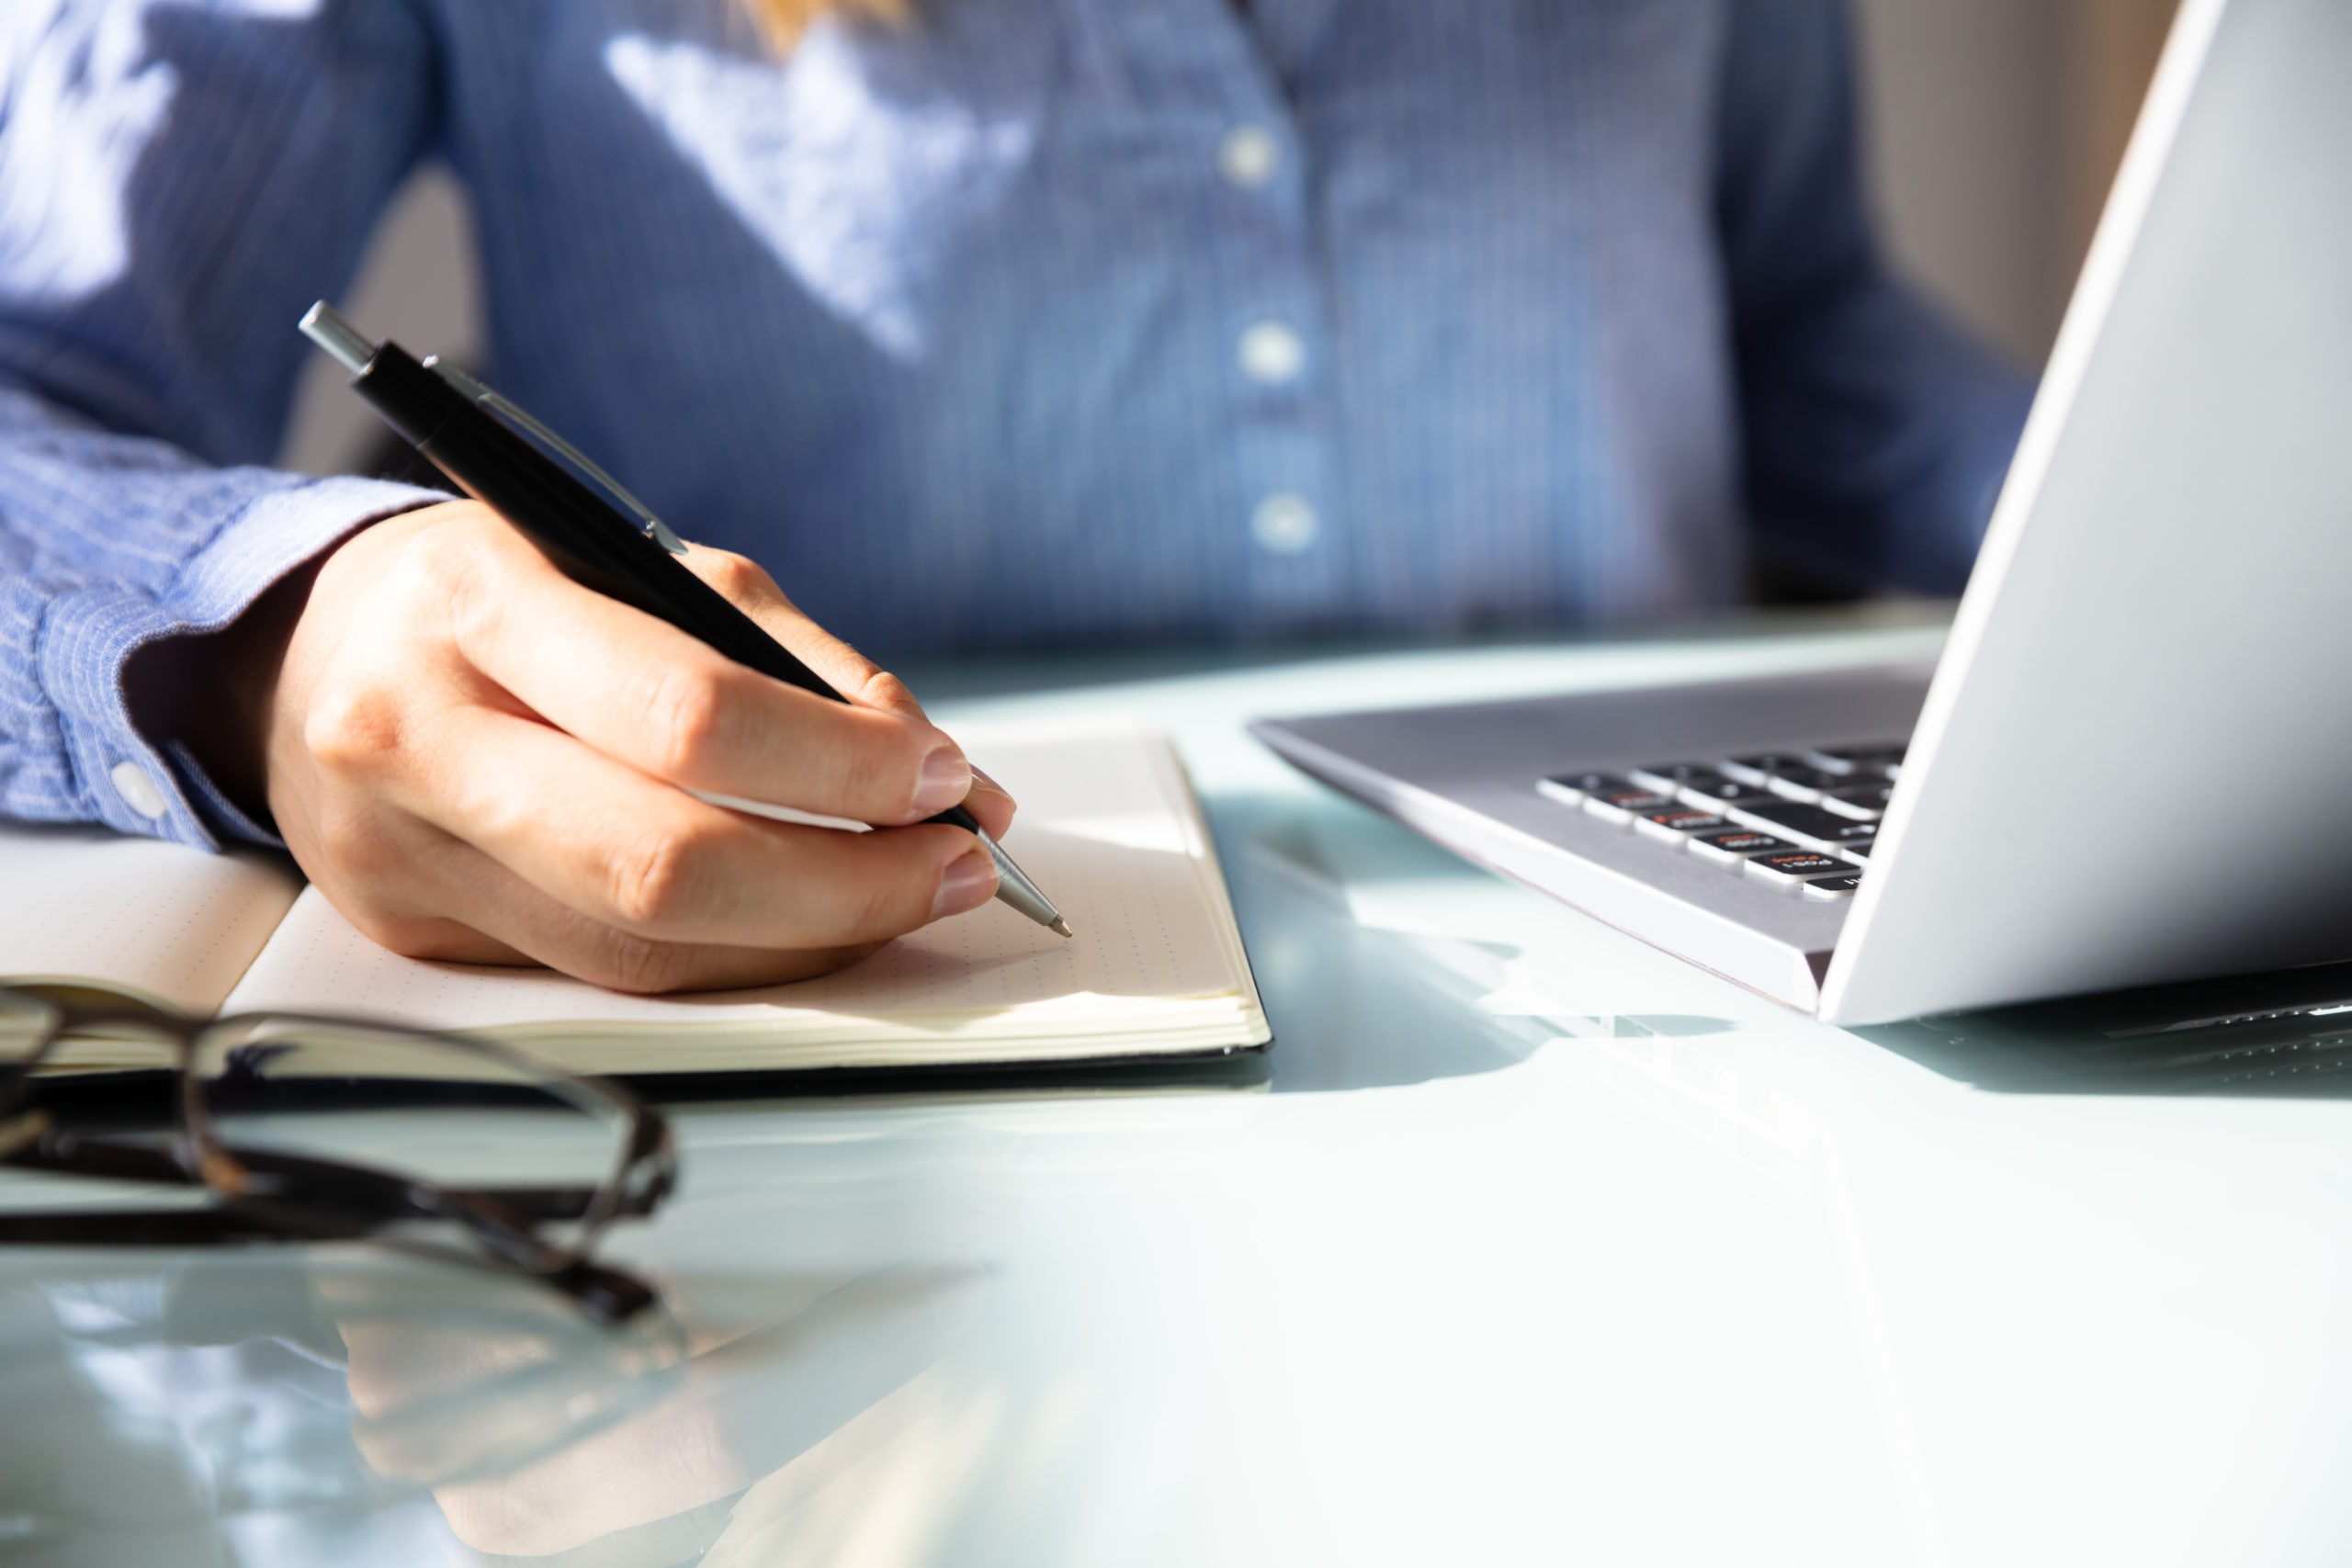 Closeup of businesswoman's hand taking notes next to a computer